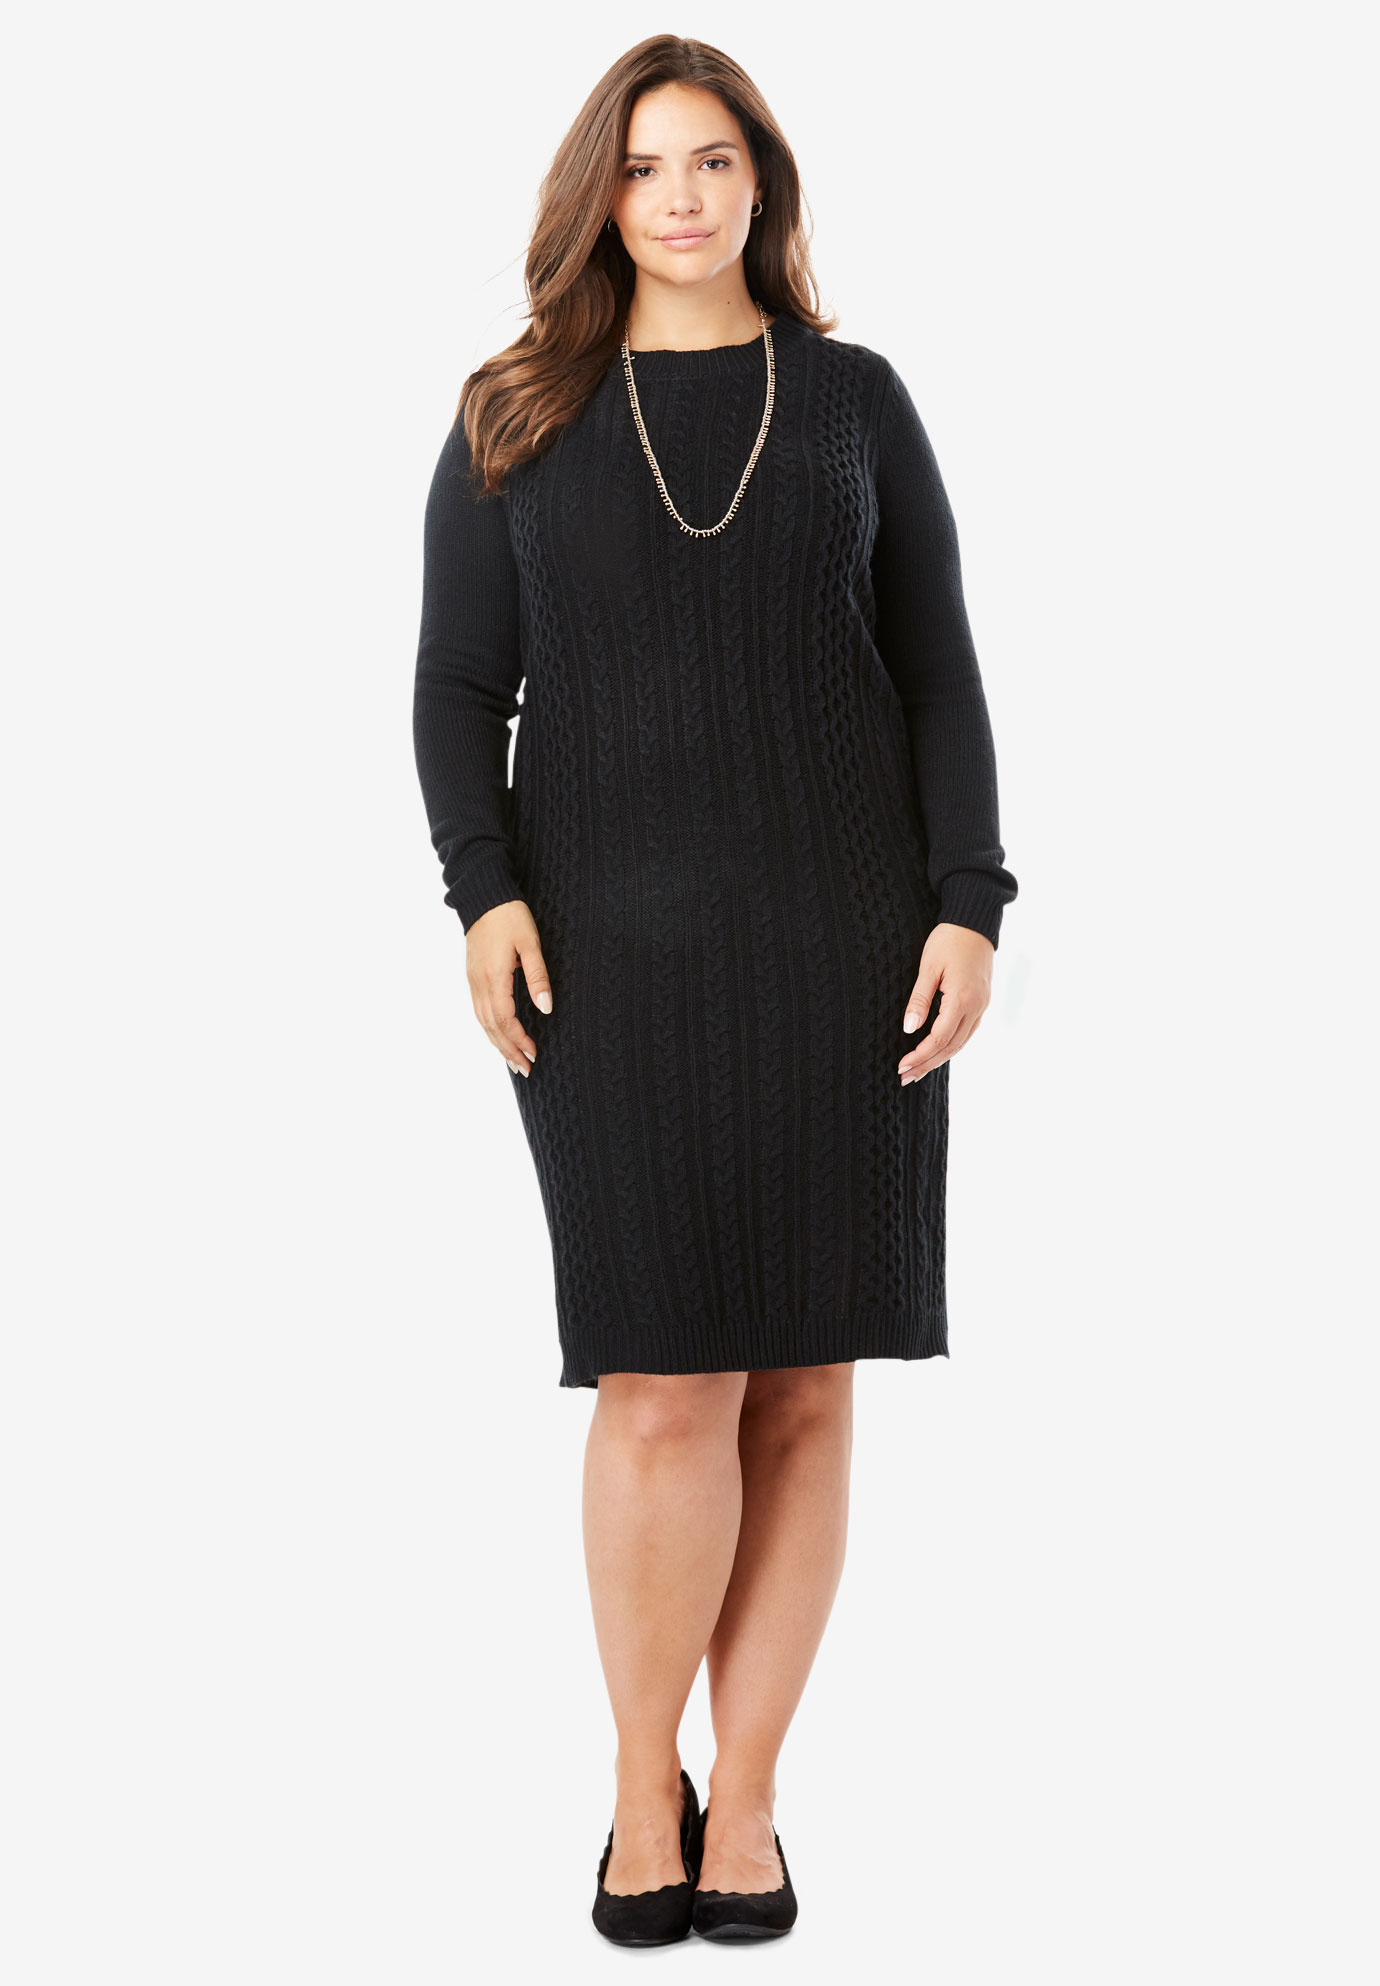 Cableknit Sweater Dress| Plus Size Casual Dresses | Full Beauty